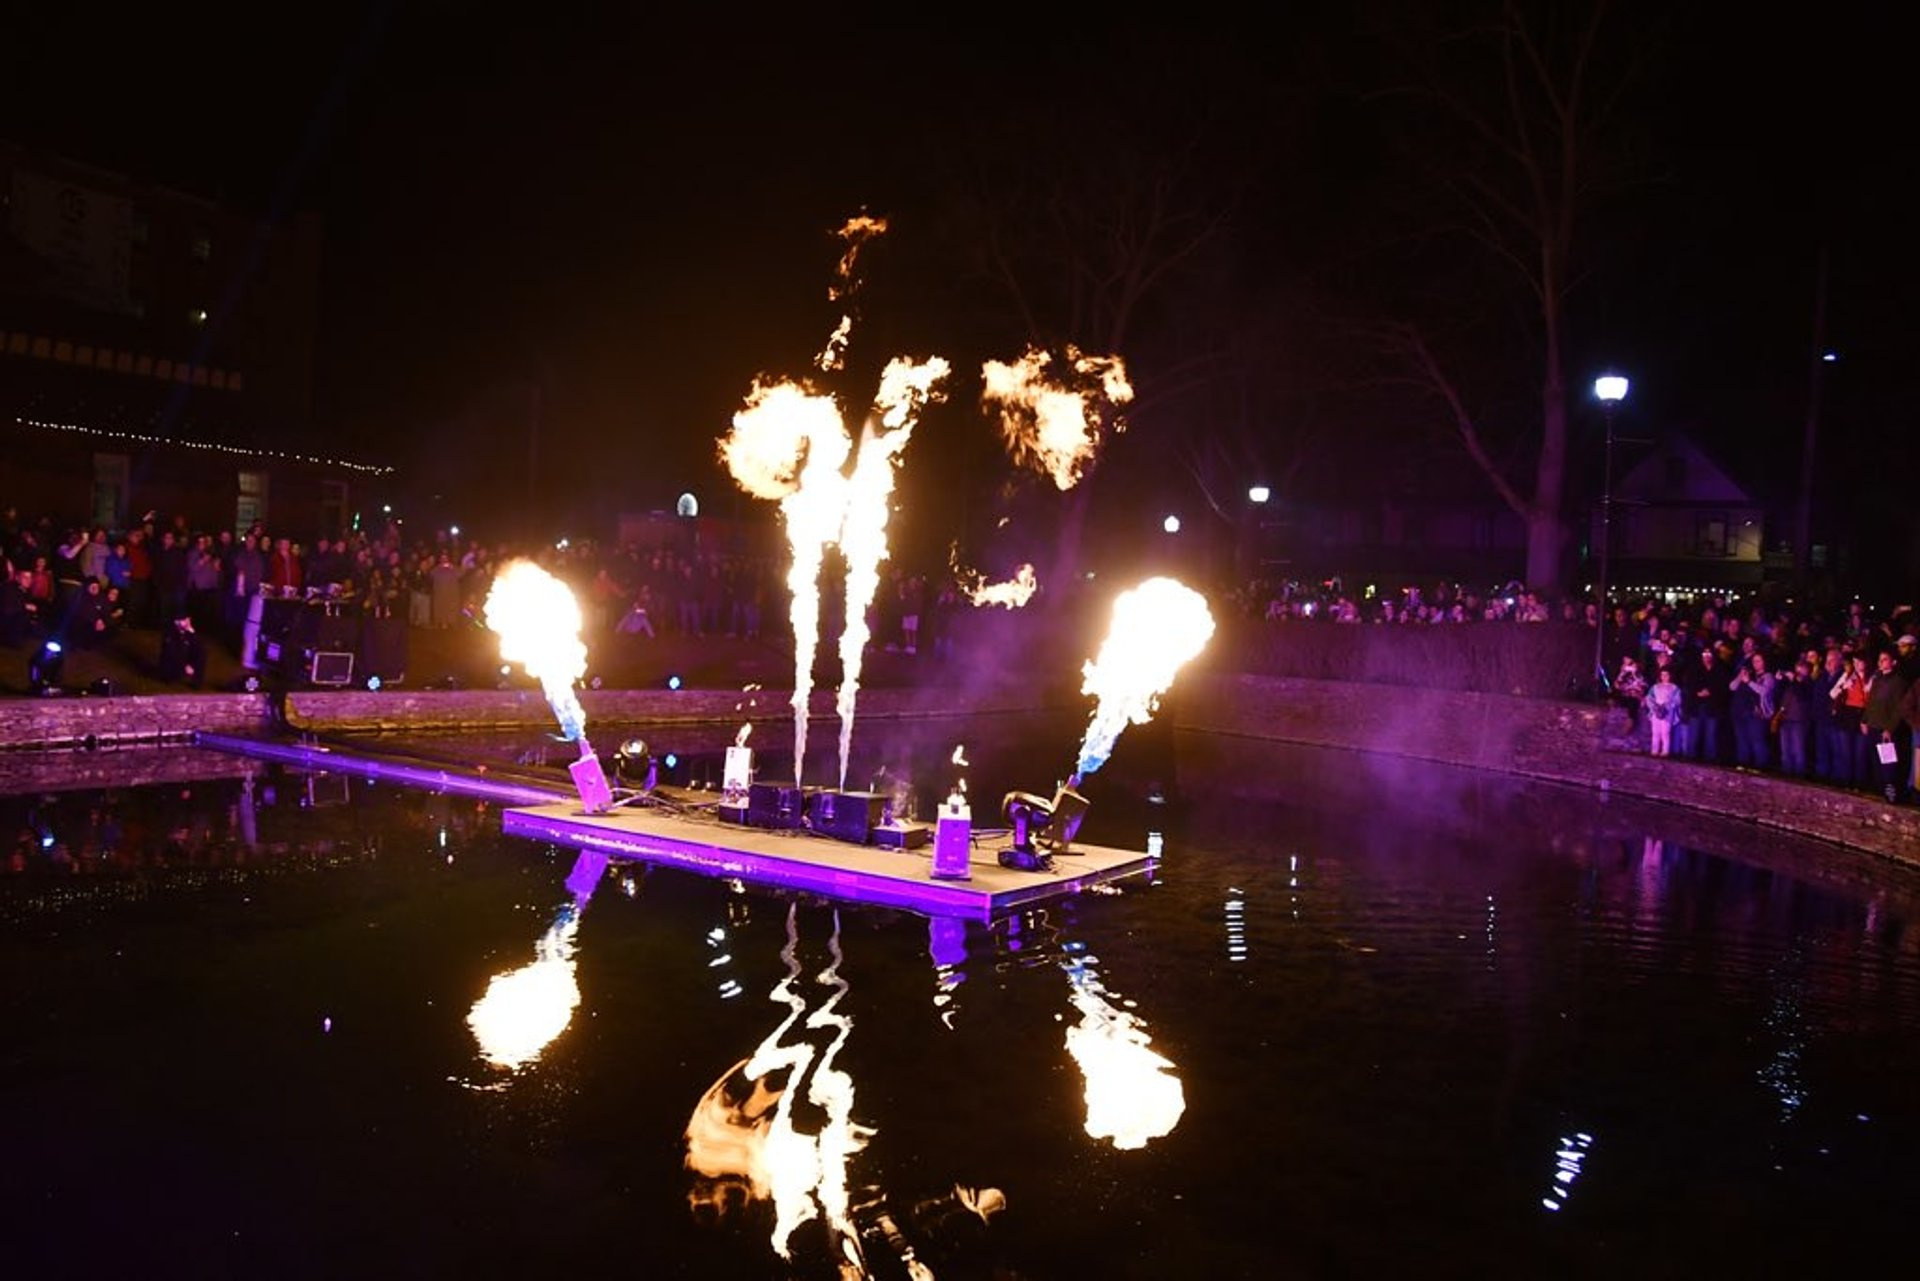 The fire show at Duck Pond in Lititz Springs Park 2020